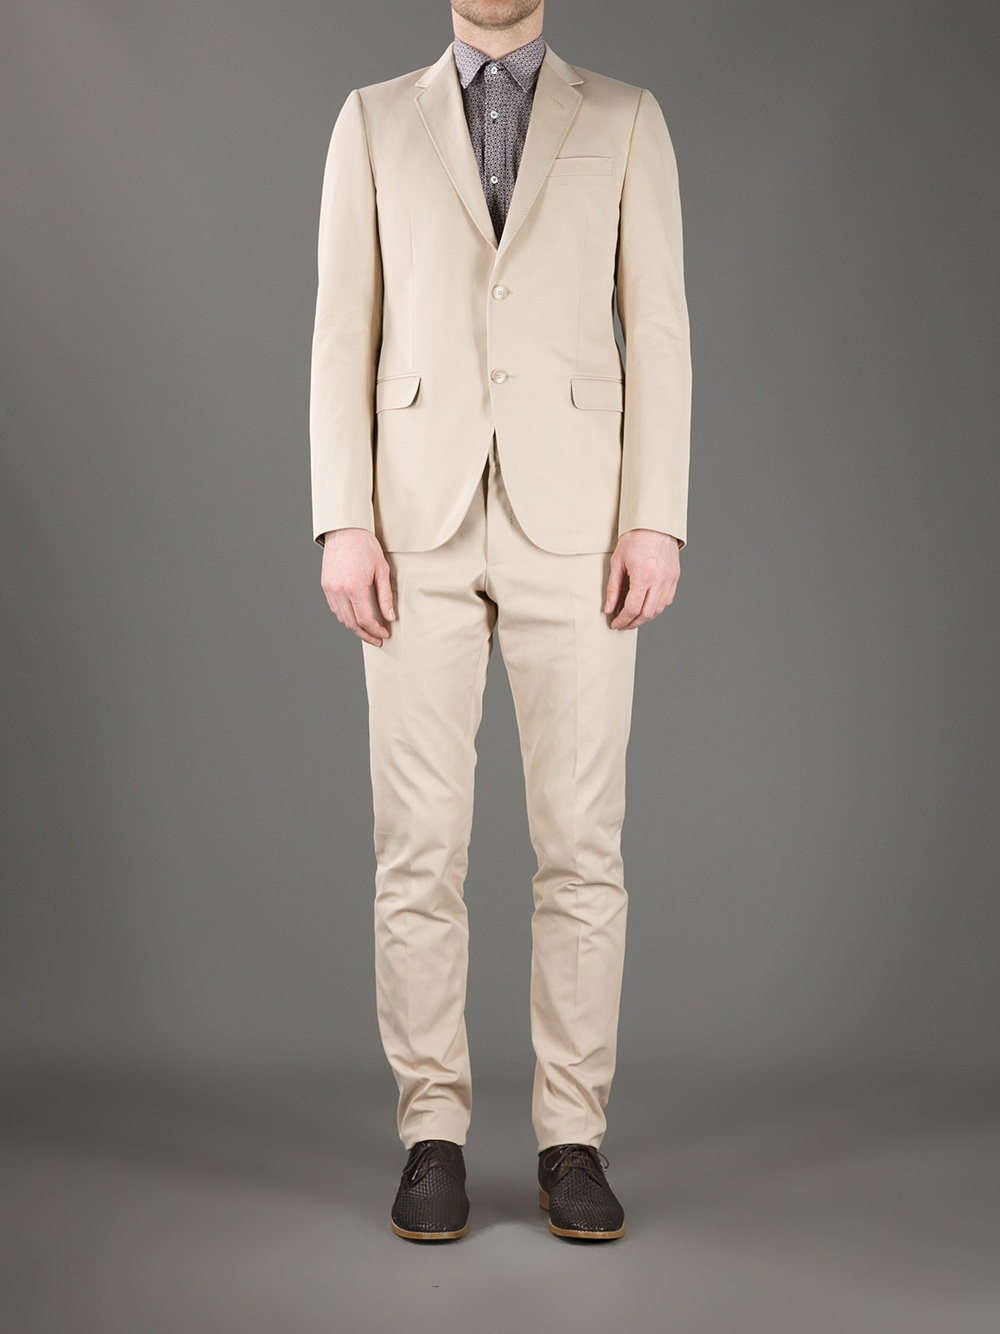 Lyst Gucci Lightweight Suit In Natural For Men